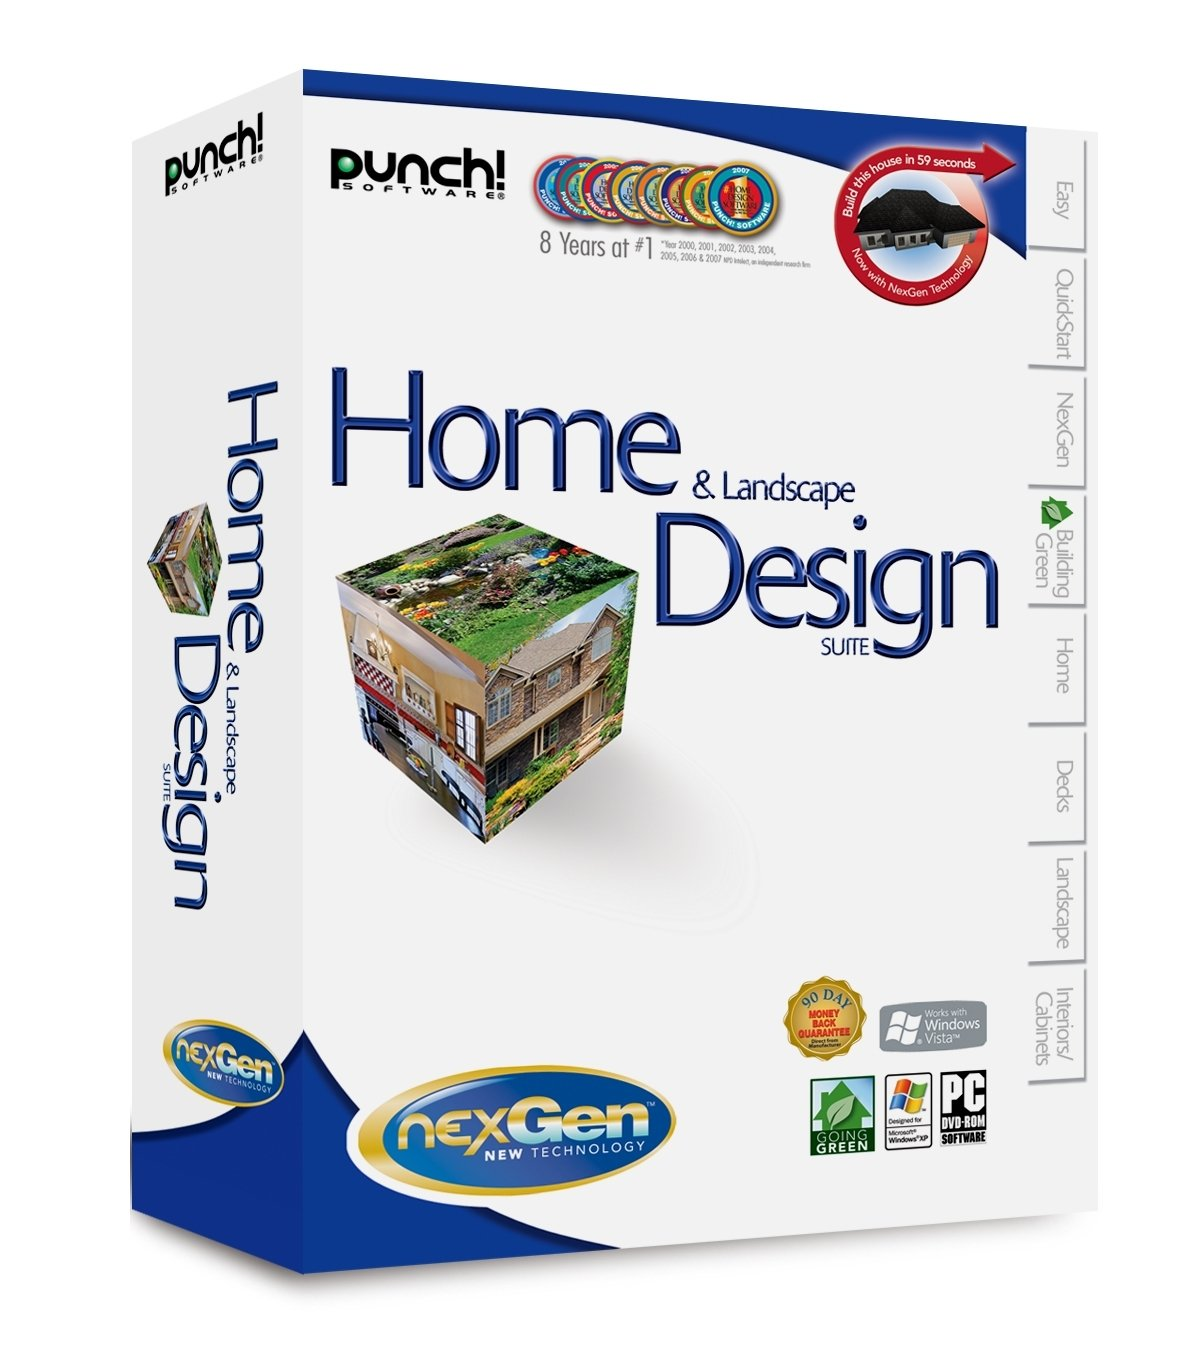 Amazon.com: Punch! Home & Landscape Design Suite with NexGen ...